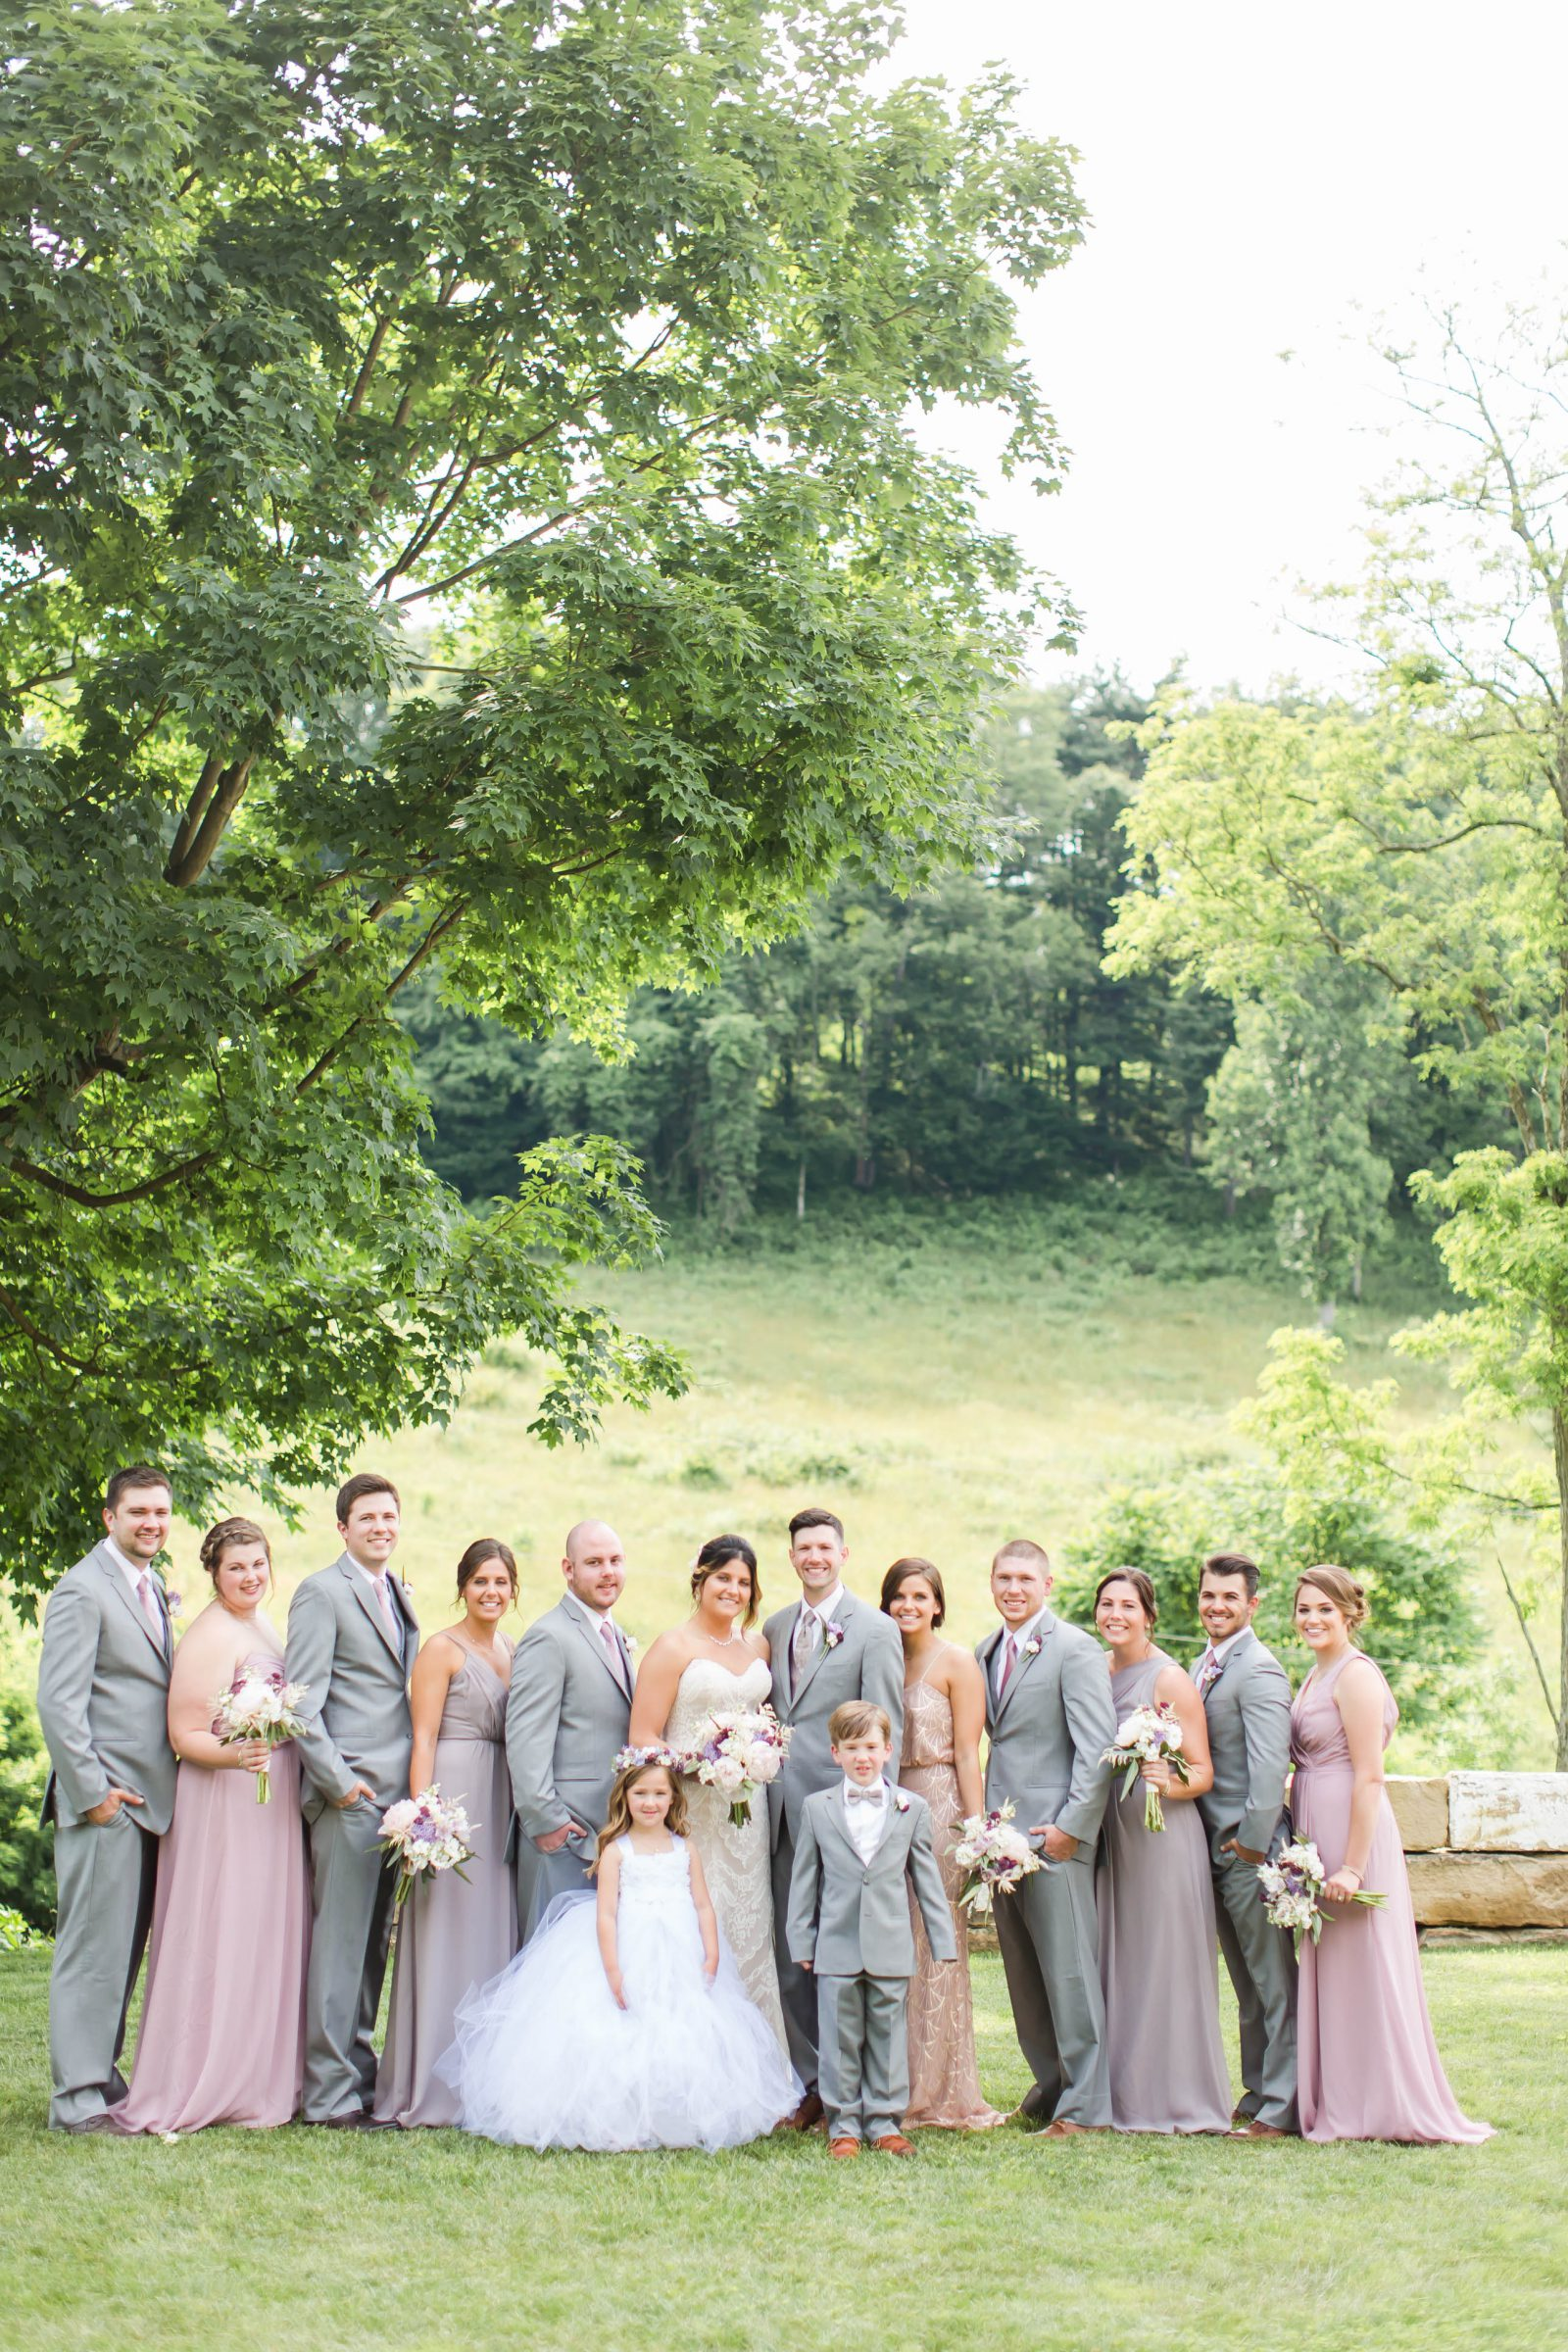 rivercrest-farm-summer-wedding-loren-jackson-photography-54